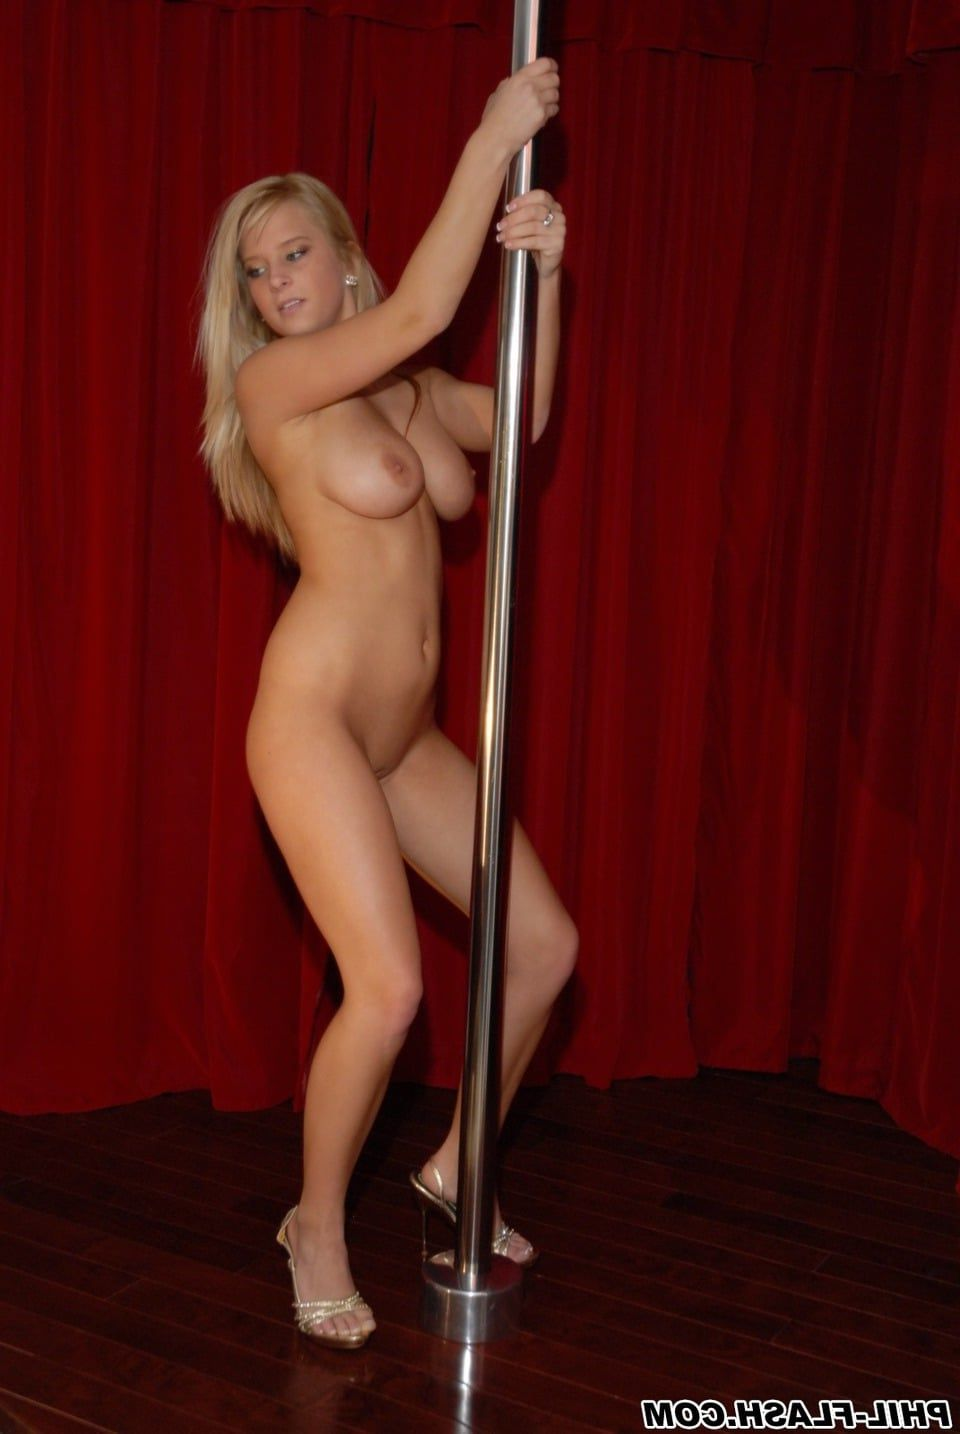 stipers naked on pole